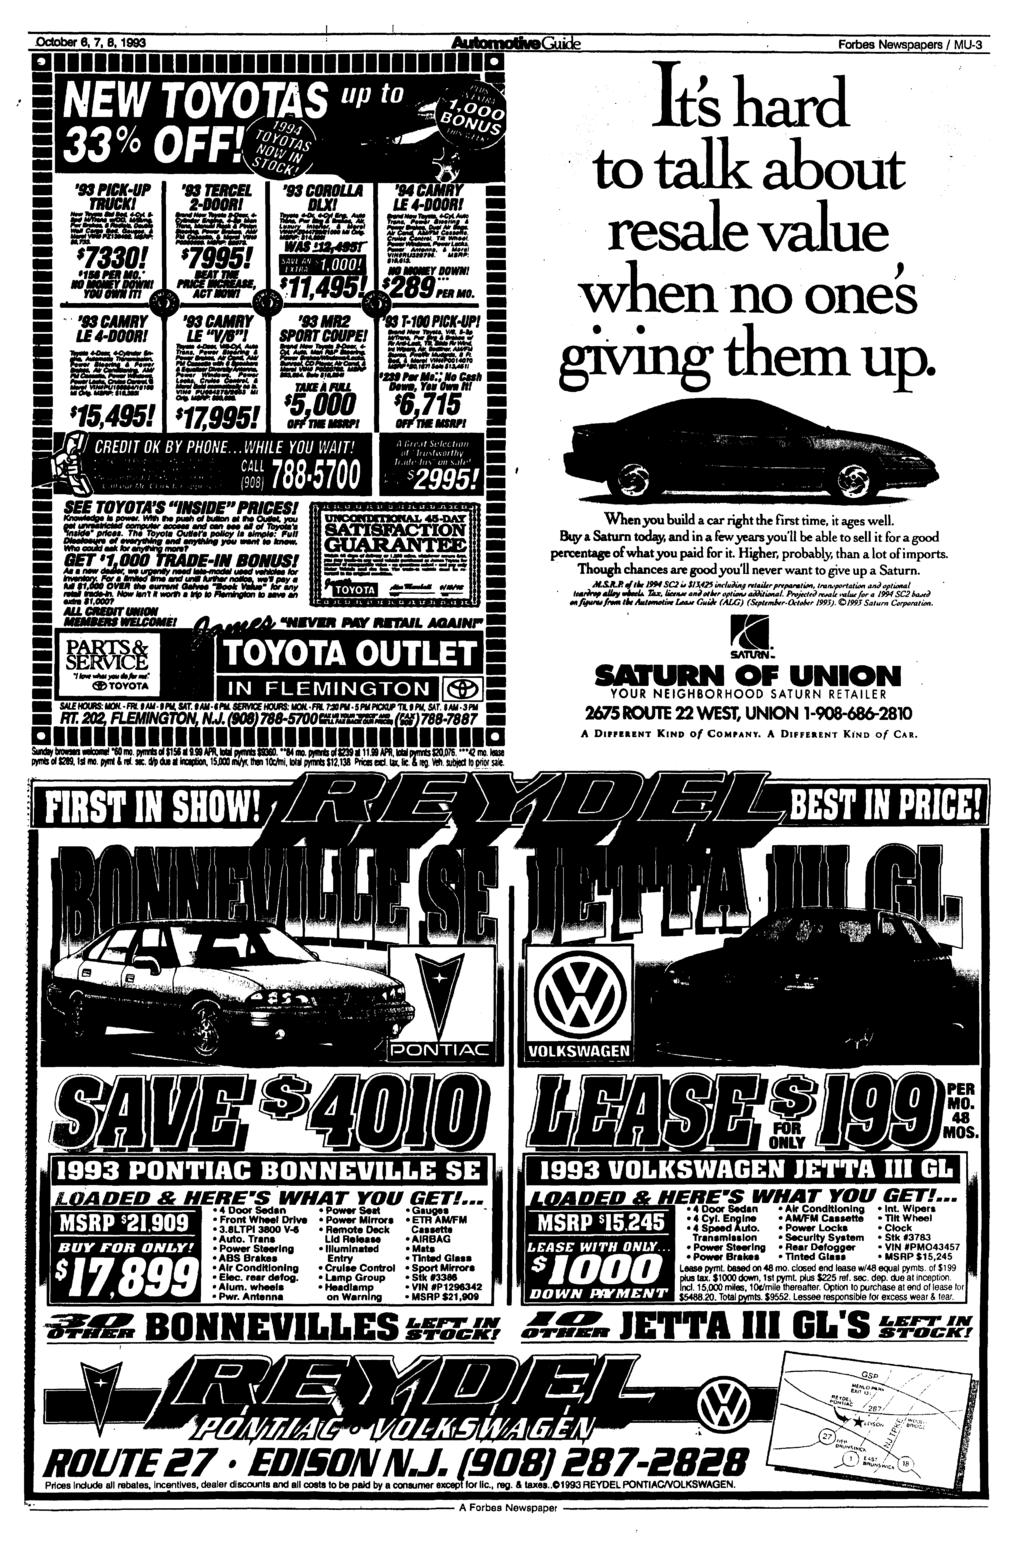 "October 6,7, 8.1993 Forbes Newspapers / MU-3 NEW TOYOTAS u "" '93 PICK-UP TRUCK! S $ 7330! '93CAMRY LE4-D00R! *15,495! s '83TERCEL 2-D00R1 '93CAMRY IF «VM»! '93 COROLLA DLX! '93MR2 SPORT COUPE!"